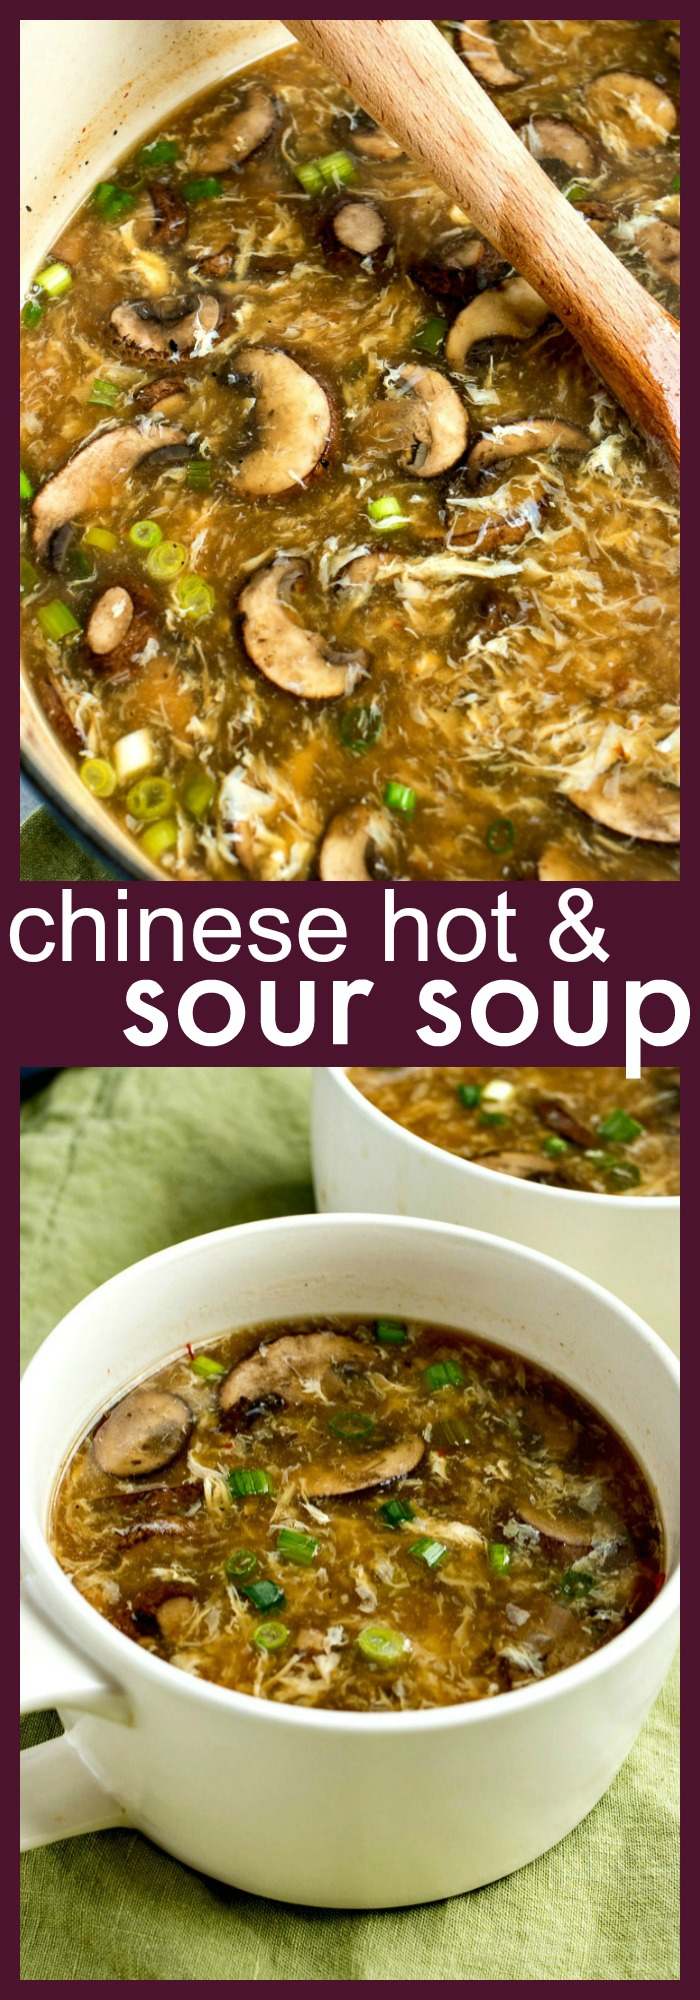 Chinese Hot & Sour Soup photo collage